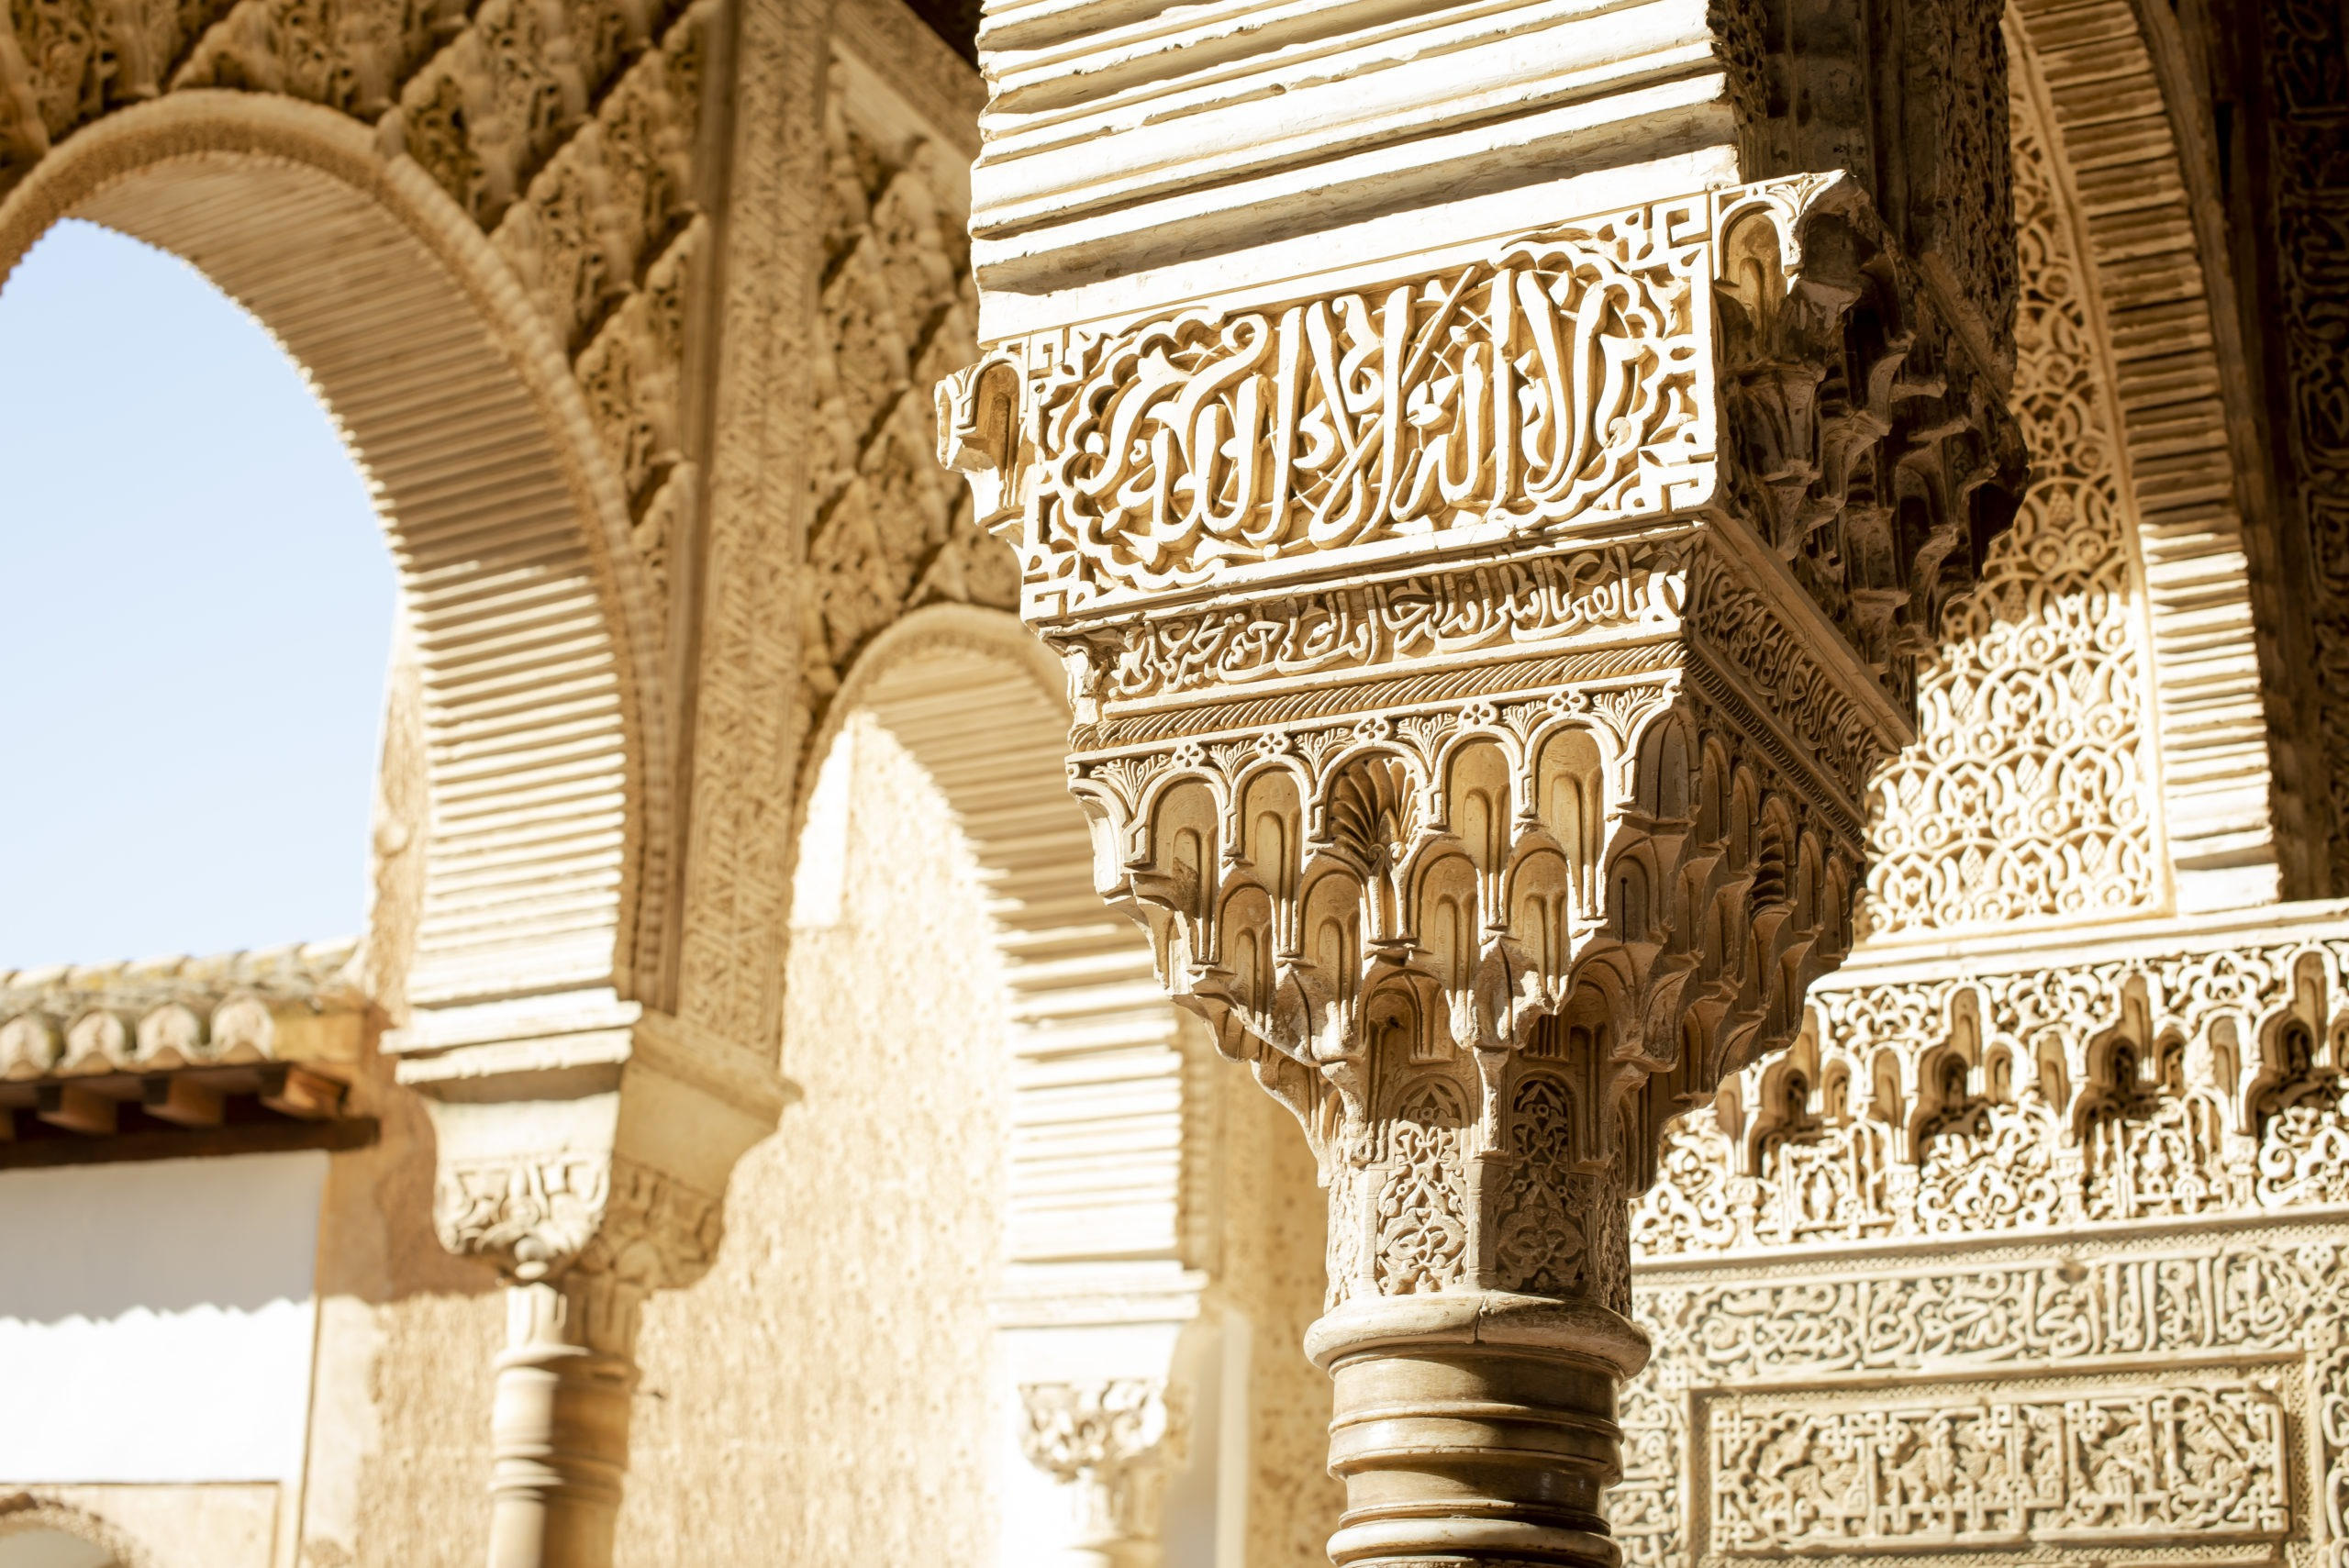 architecture-detail-of-the-alhambra-palace-granada-spain